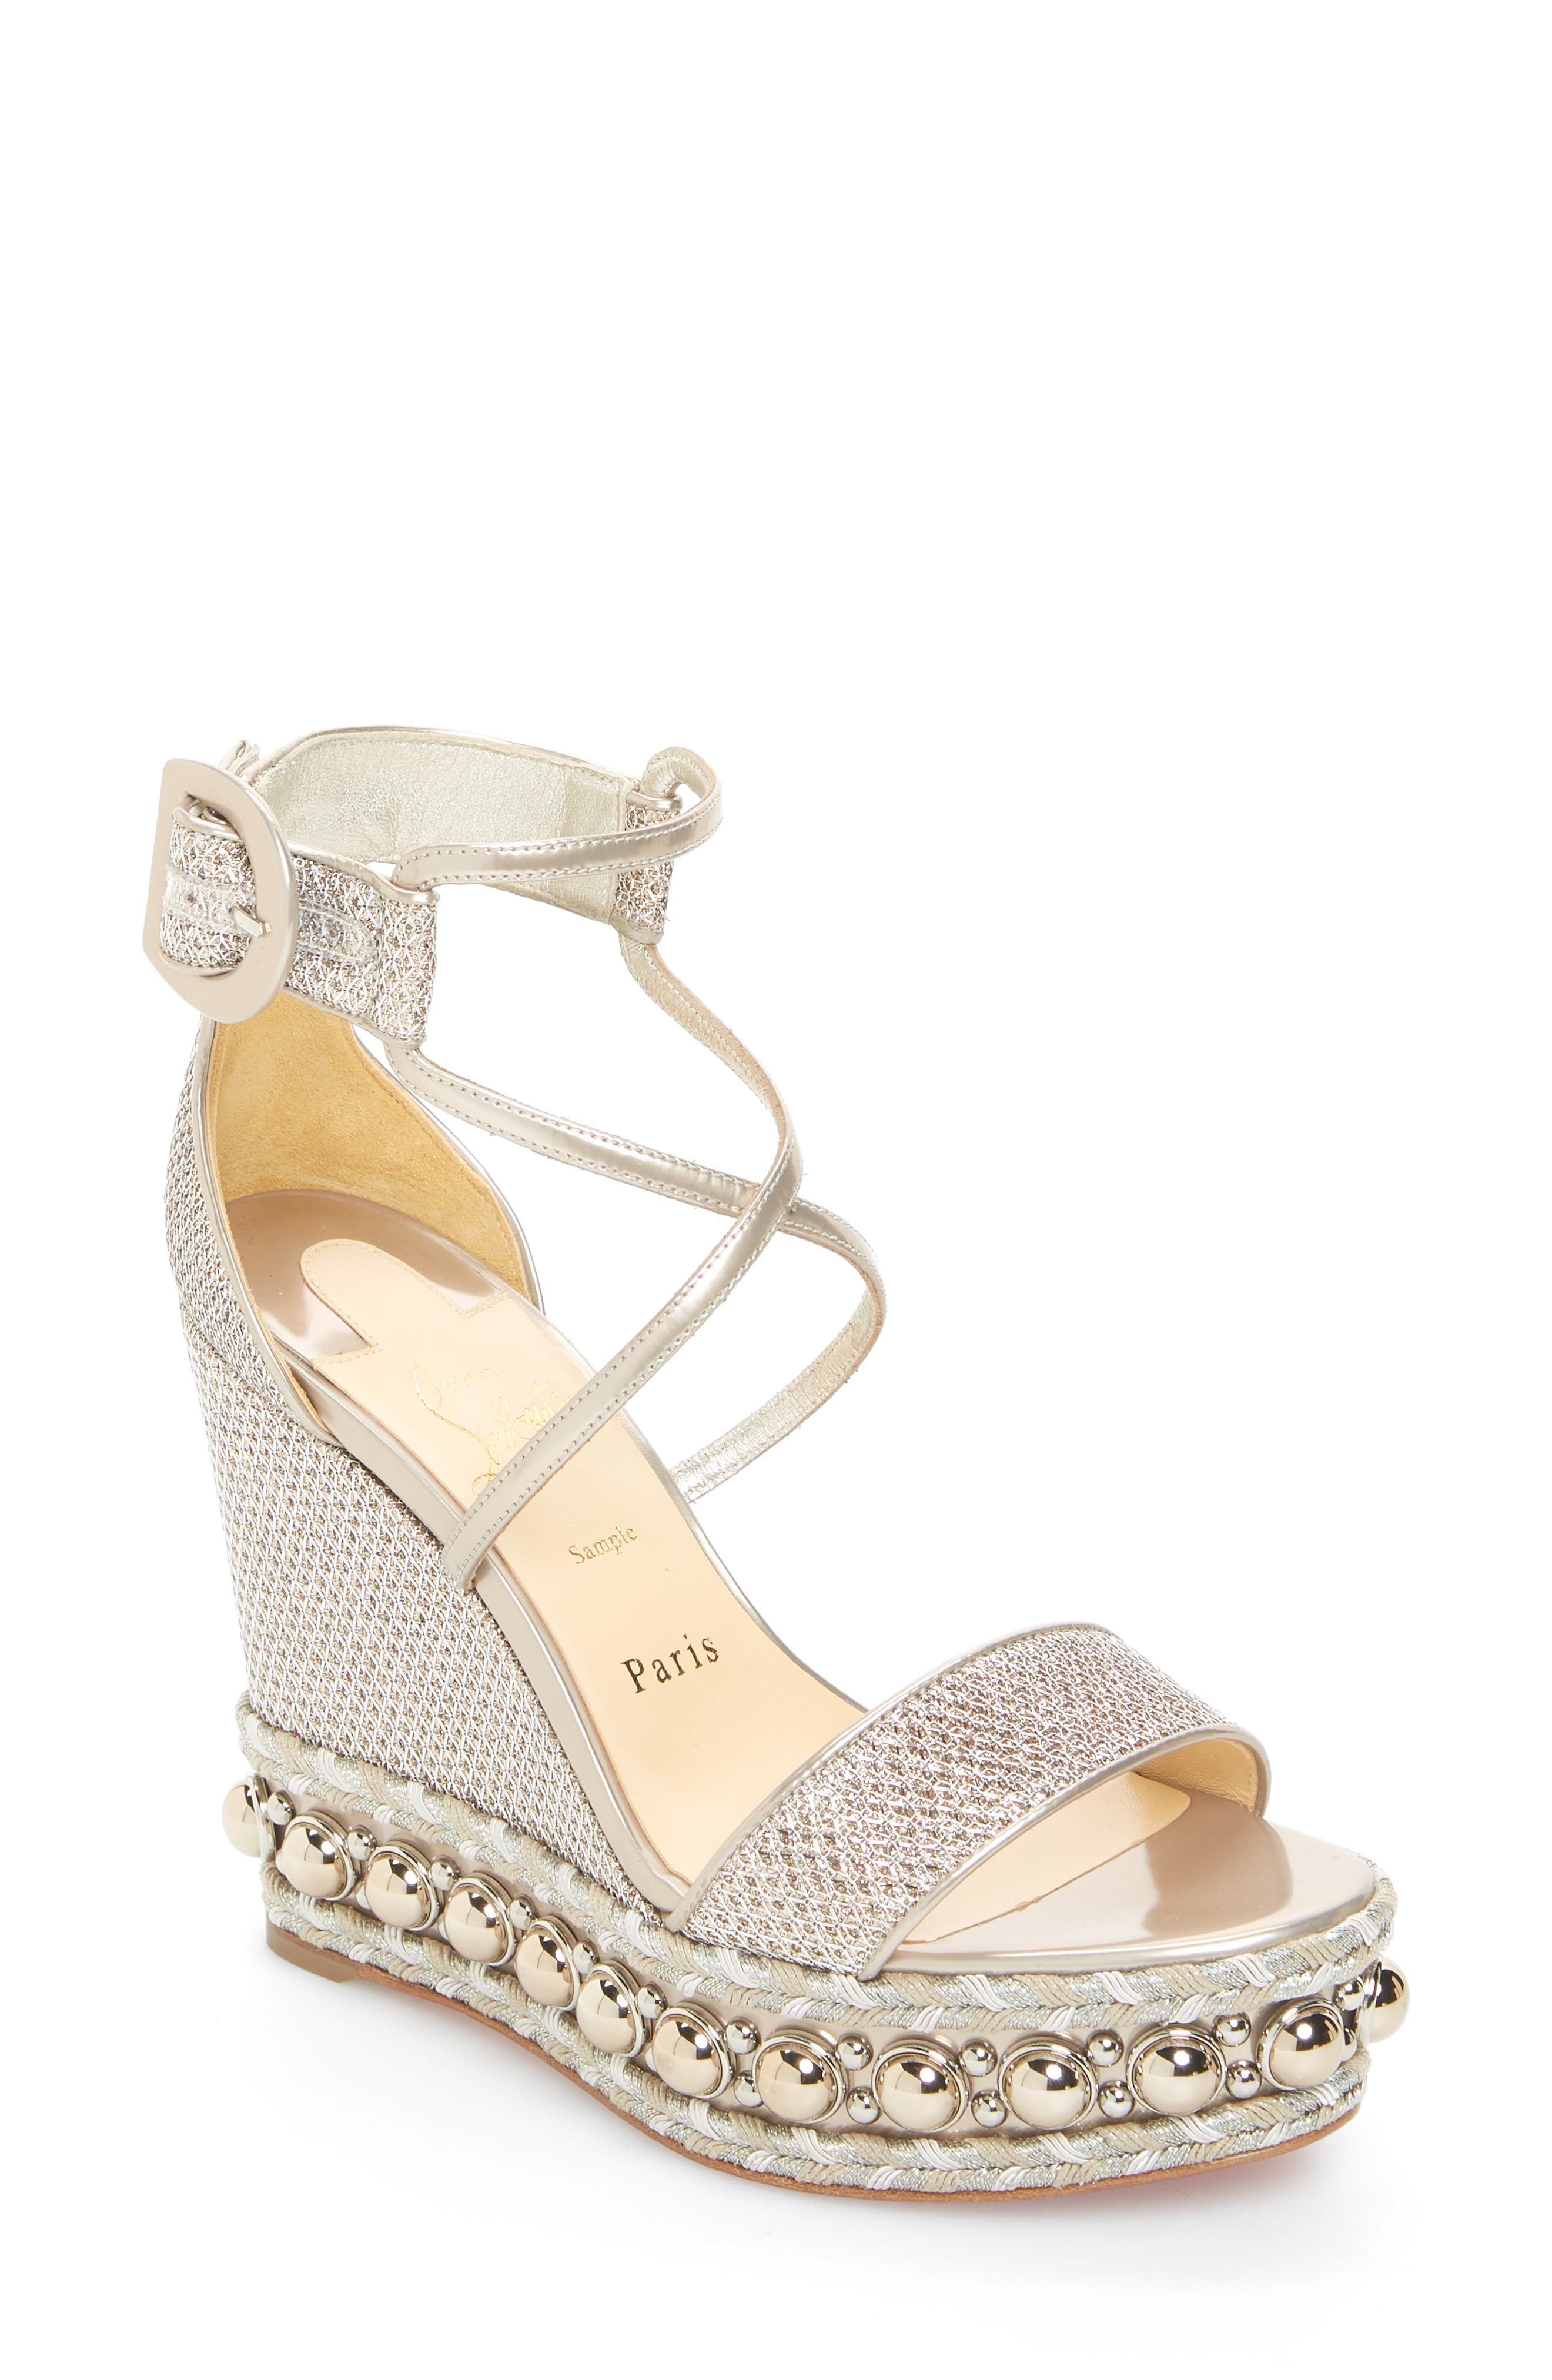 Chocazeppa Studded Wedge,                             Main thumbnail 1, color,                             COLOMBE